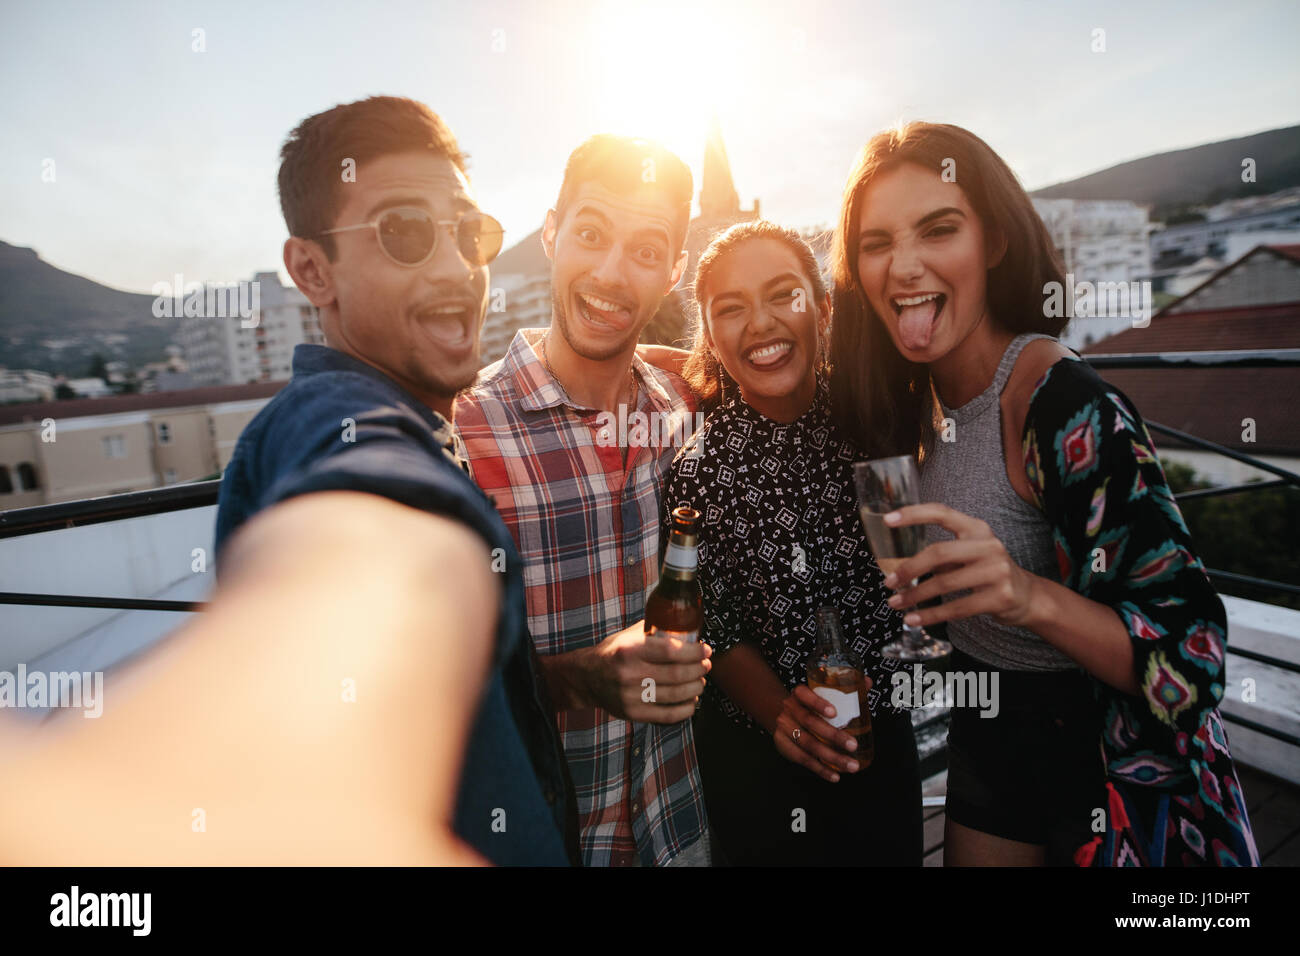 Group of people having a party on the rooftop making a selfie. Happy young friends taking self portrait during party. Stock Photo